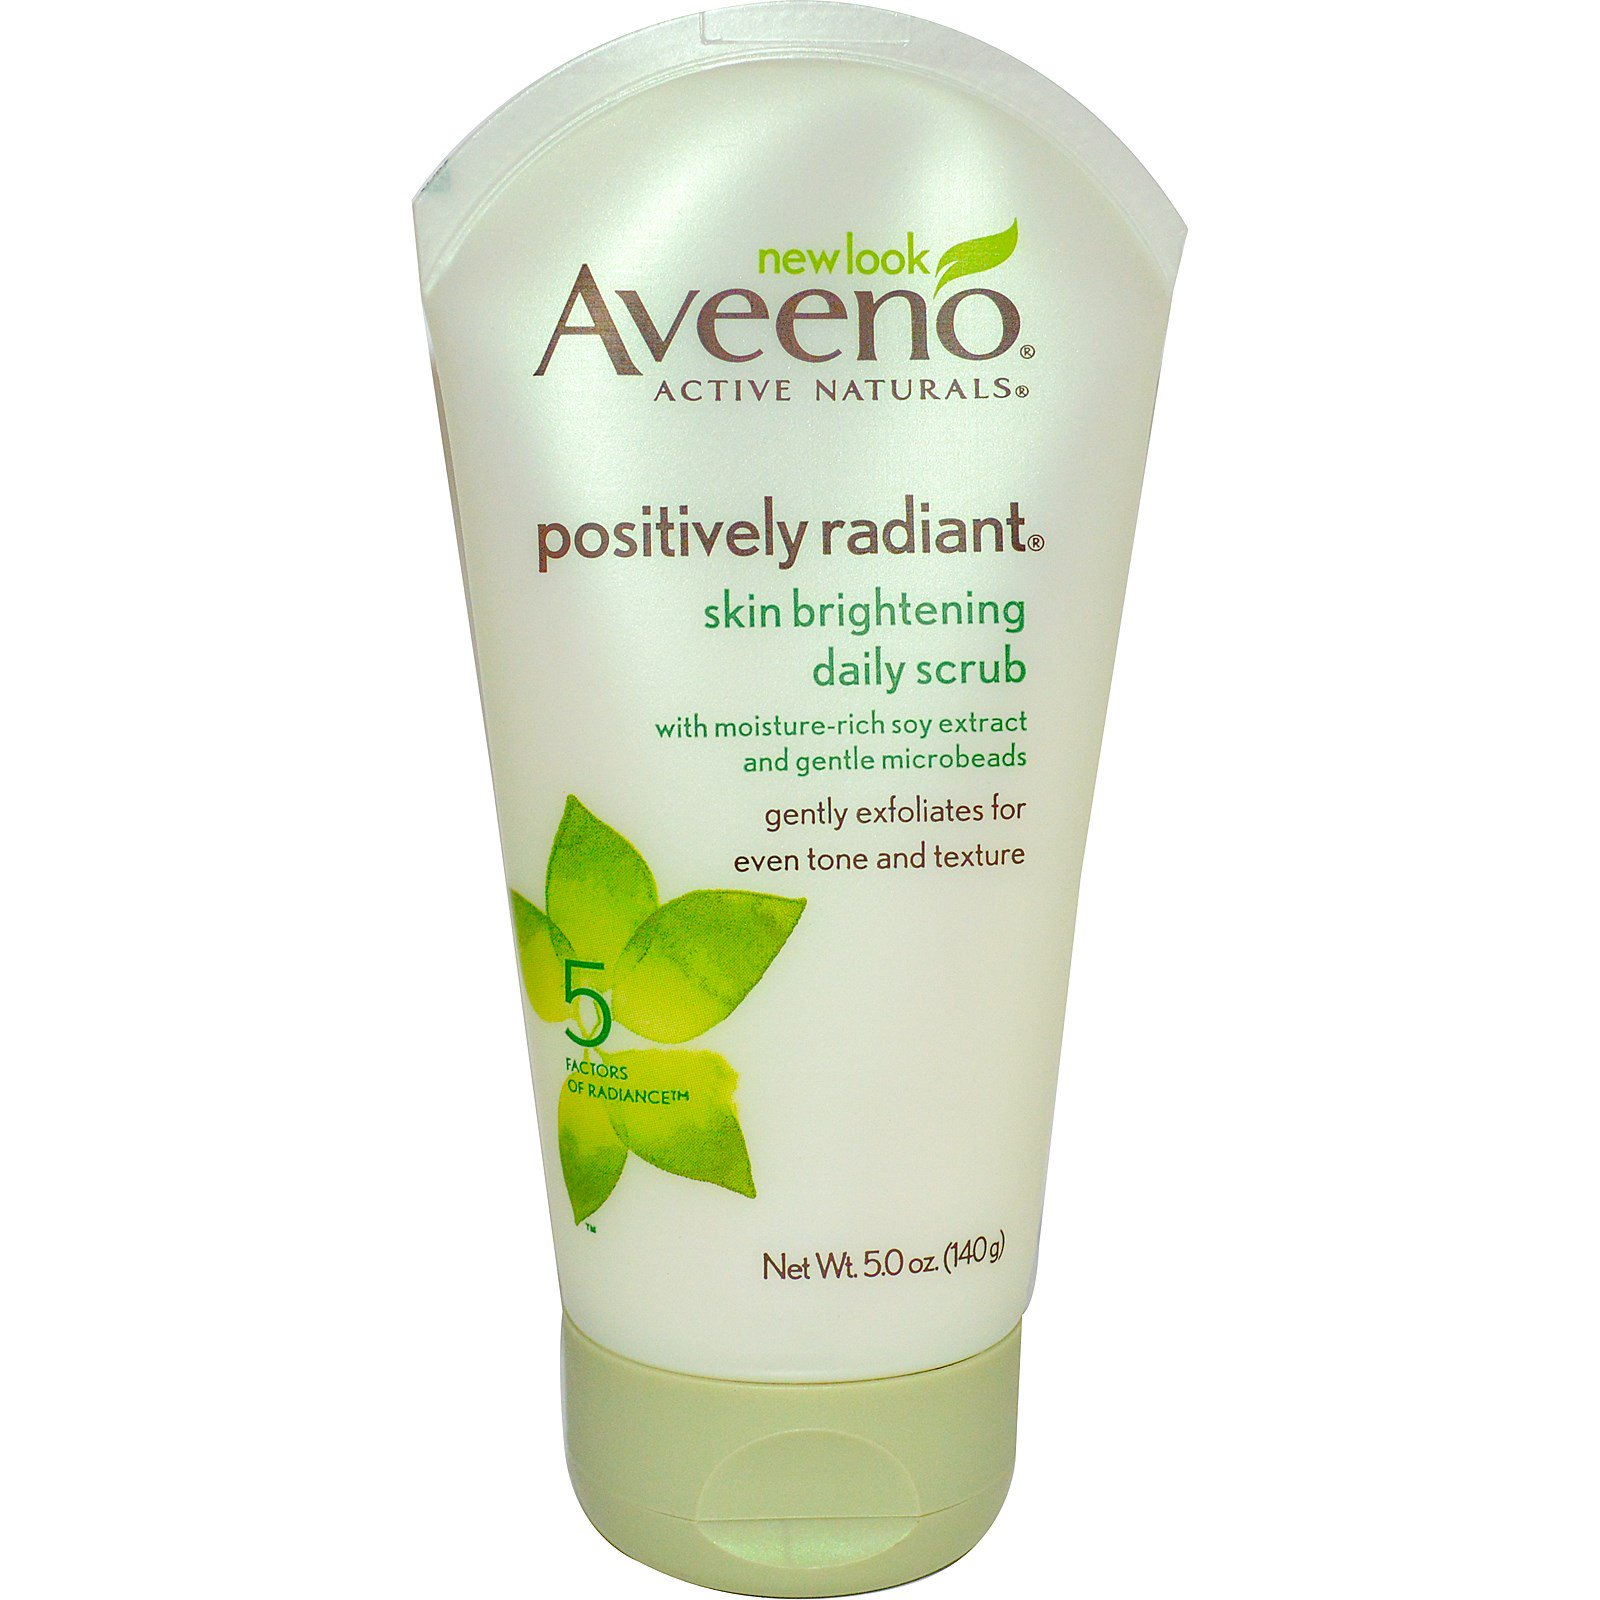 Aveeno 5 Daily Positively Scrub Skin Ounce Radiant Brightening